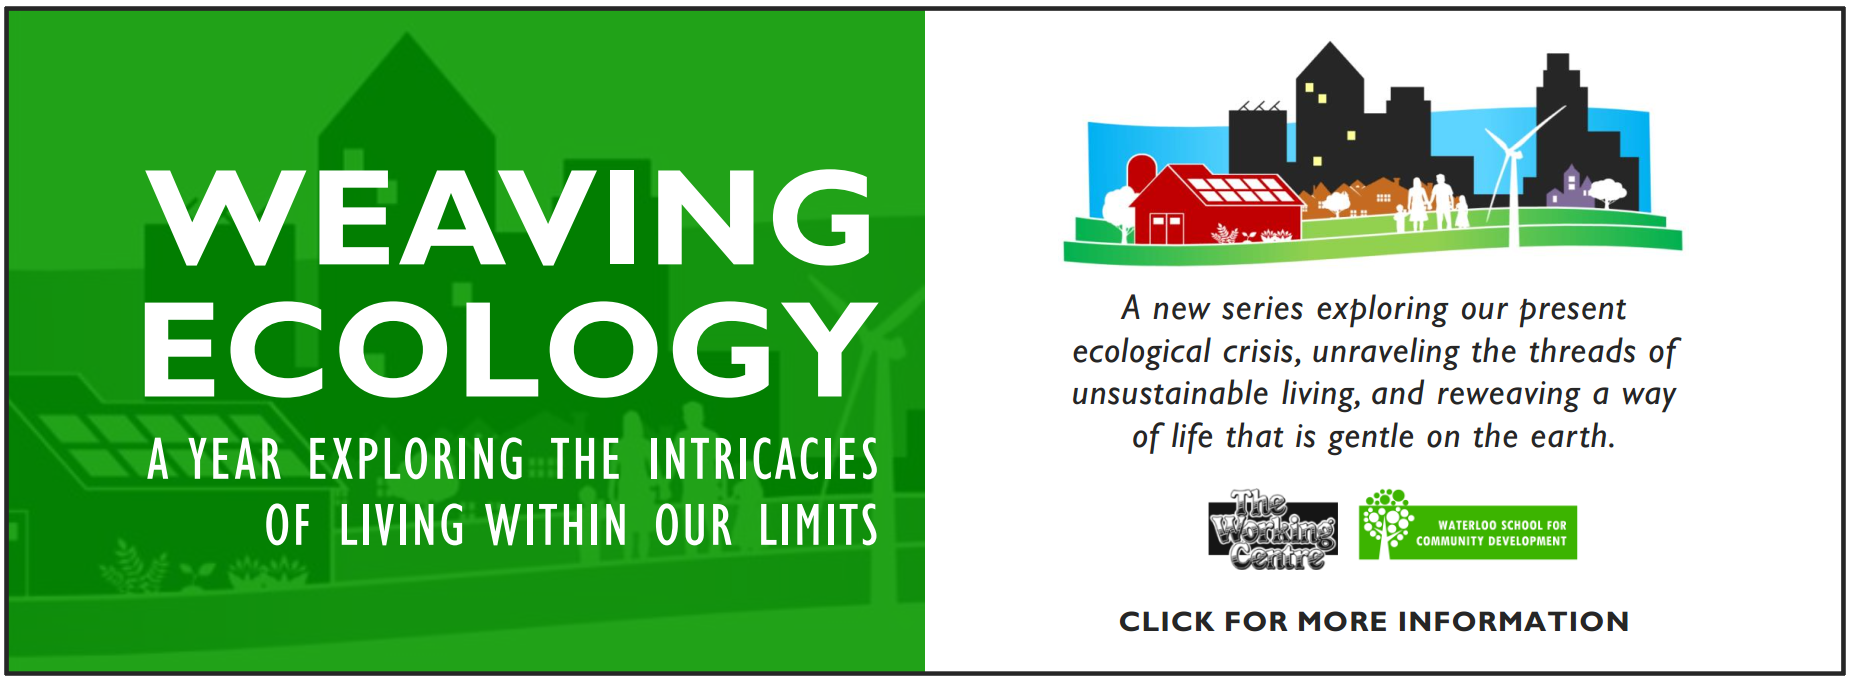 Weaving Ecology | A year exploring the intricacies of living within our limits